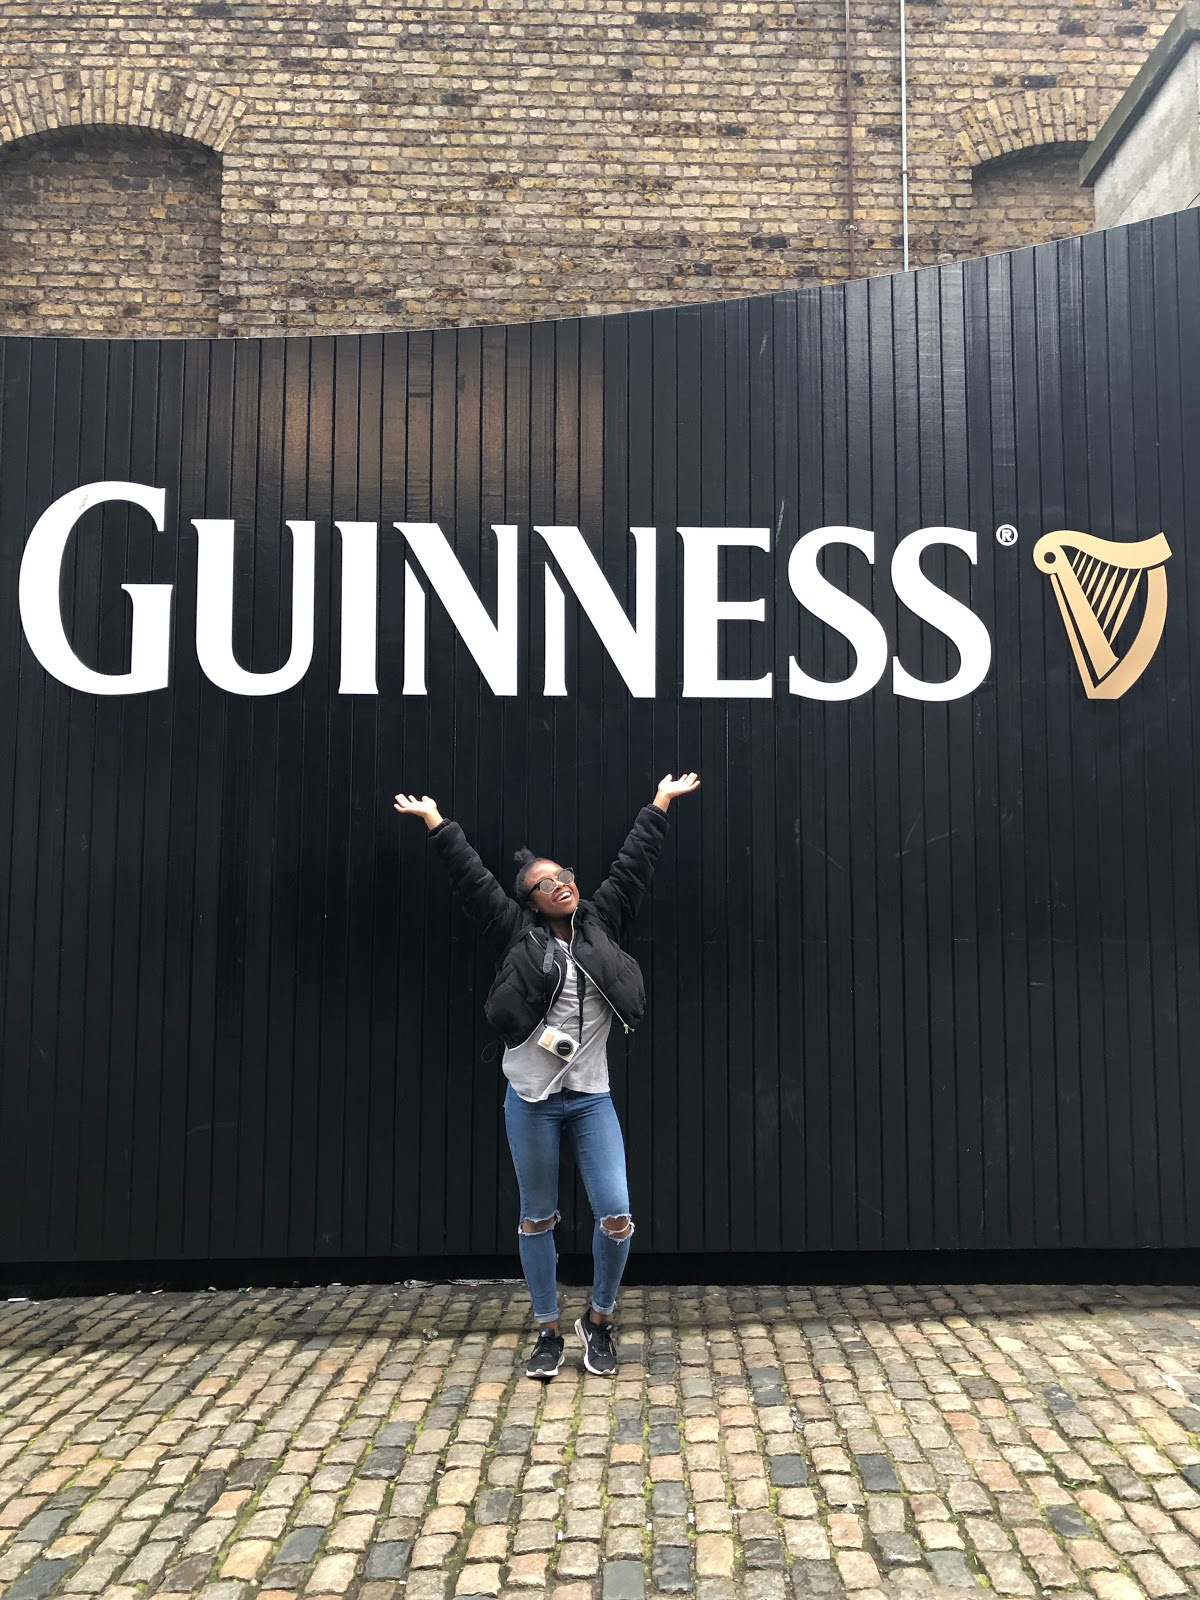 Posing outside the Guinness storehouse in Dublin